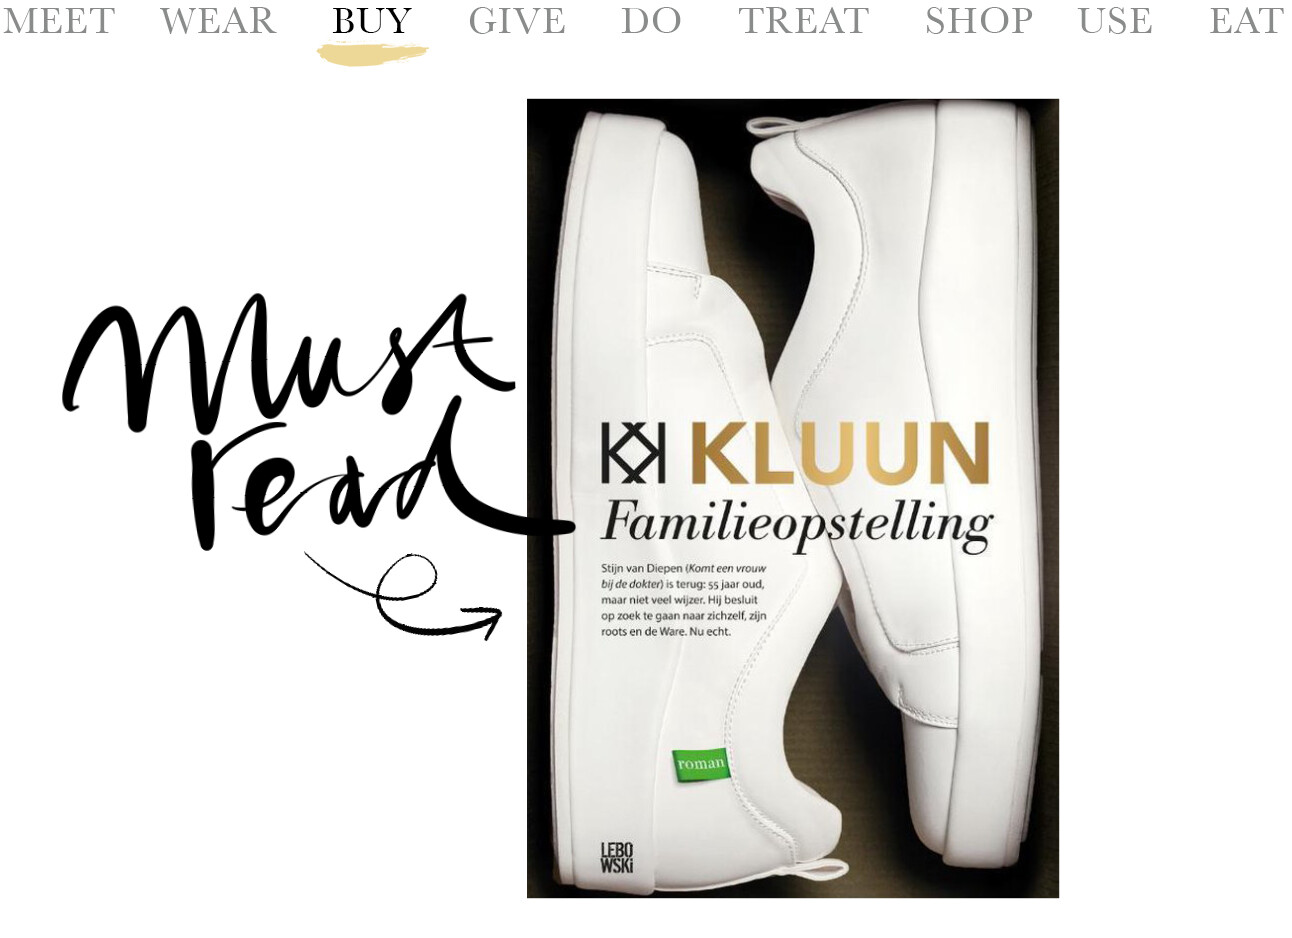 Today we…buy De nieuwe Kluun